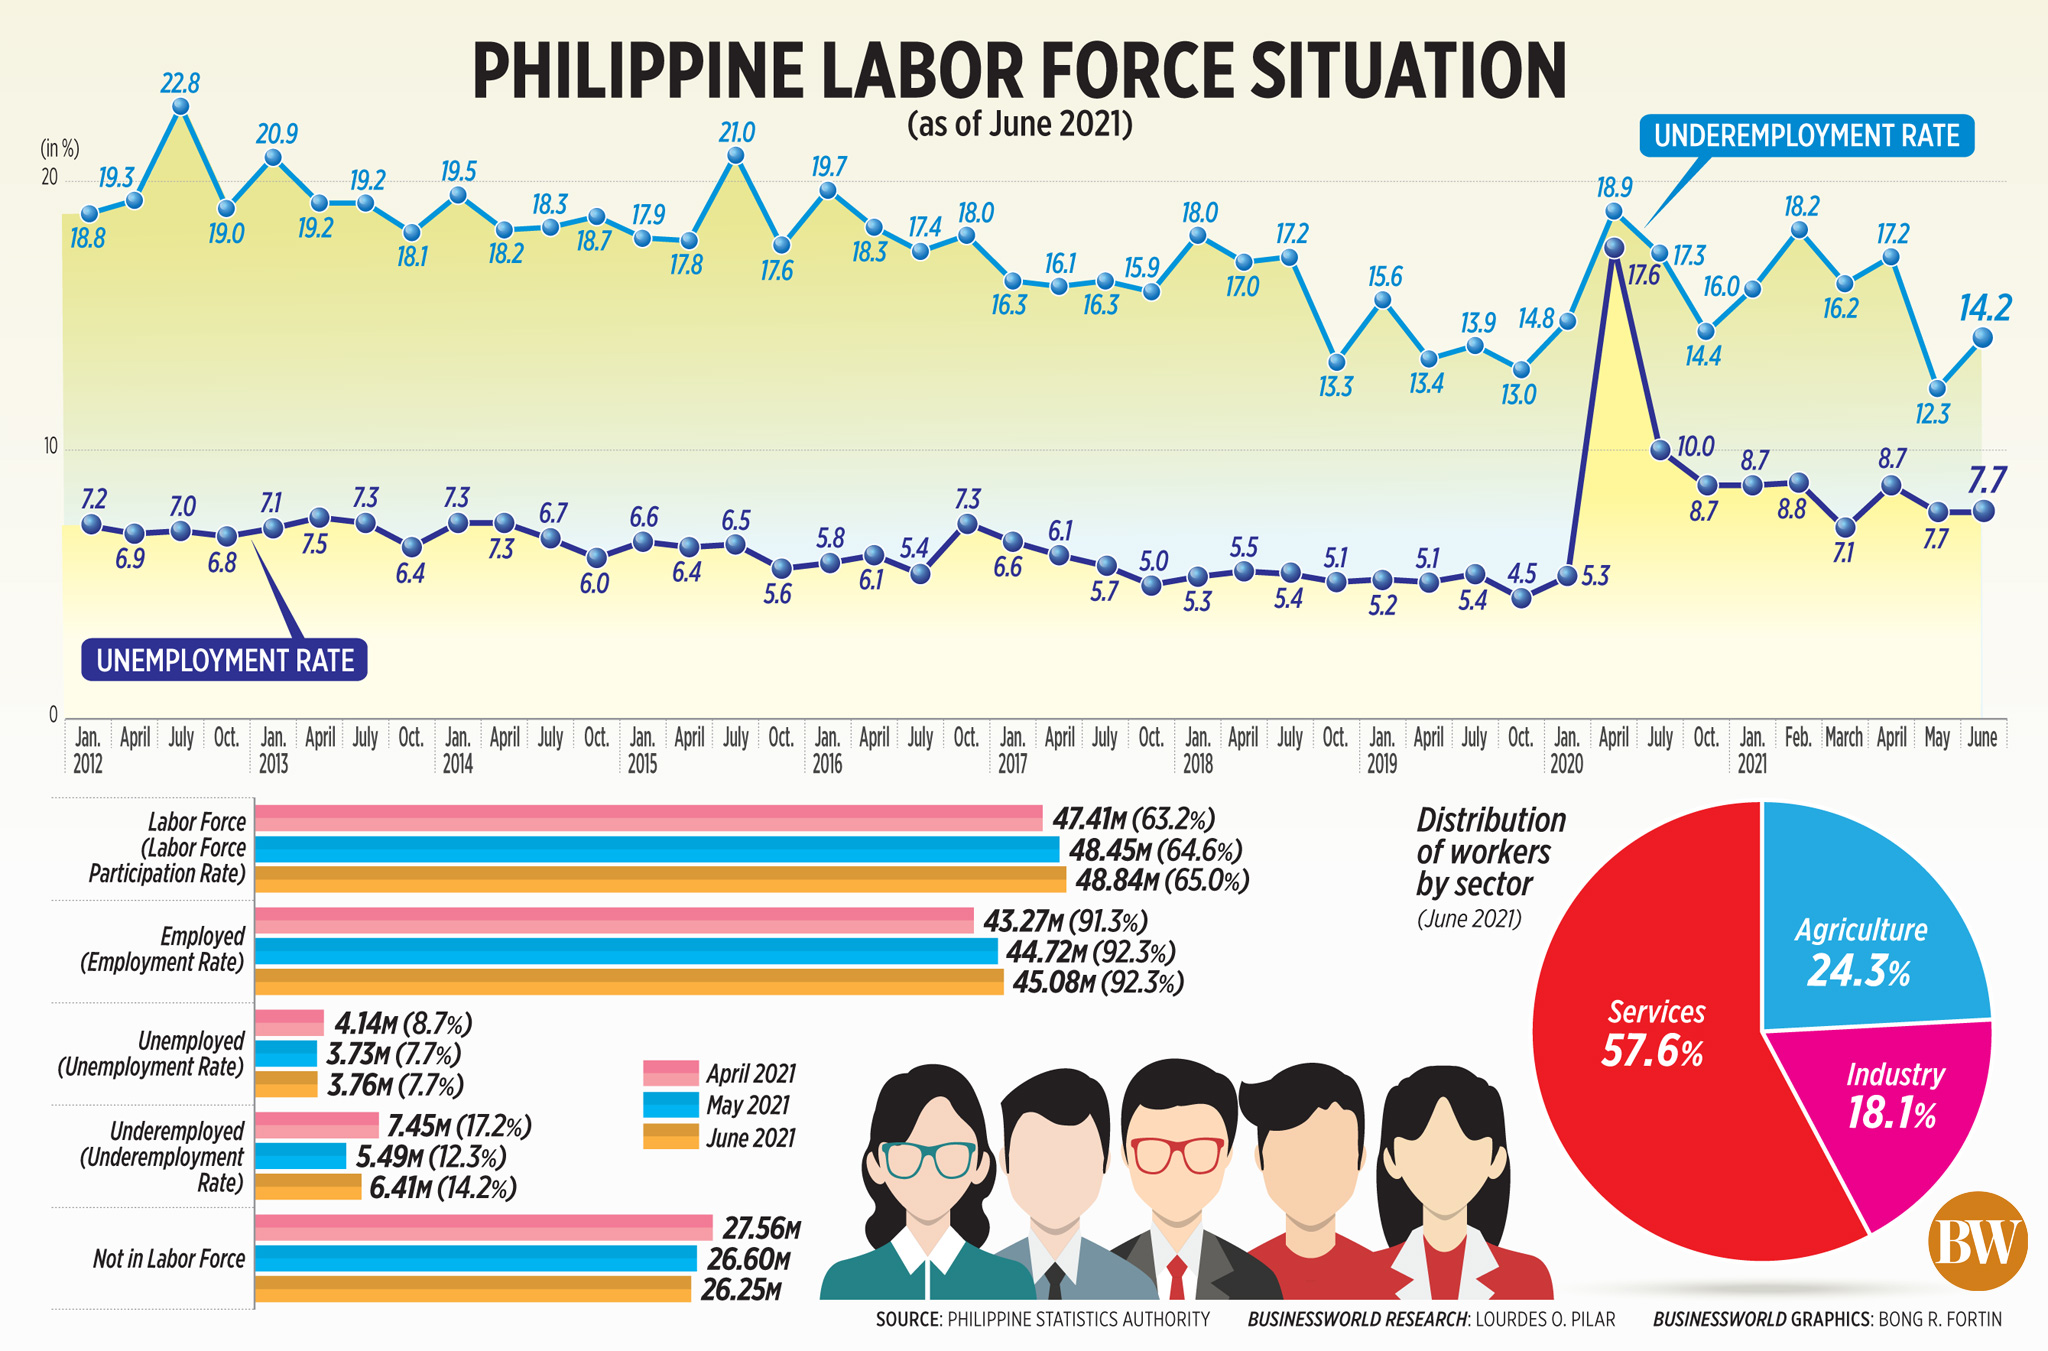 Philippine labor force situation (as of June 2021)